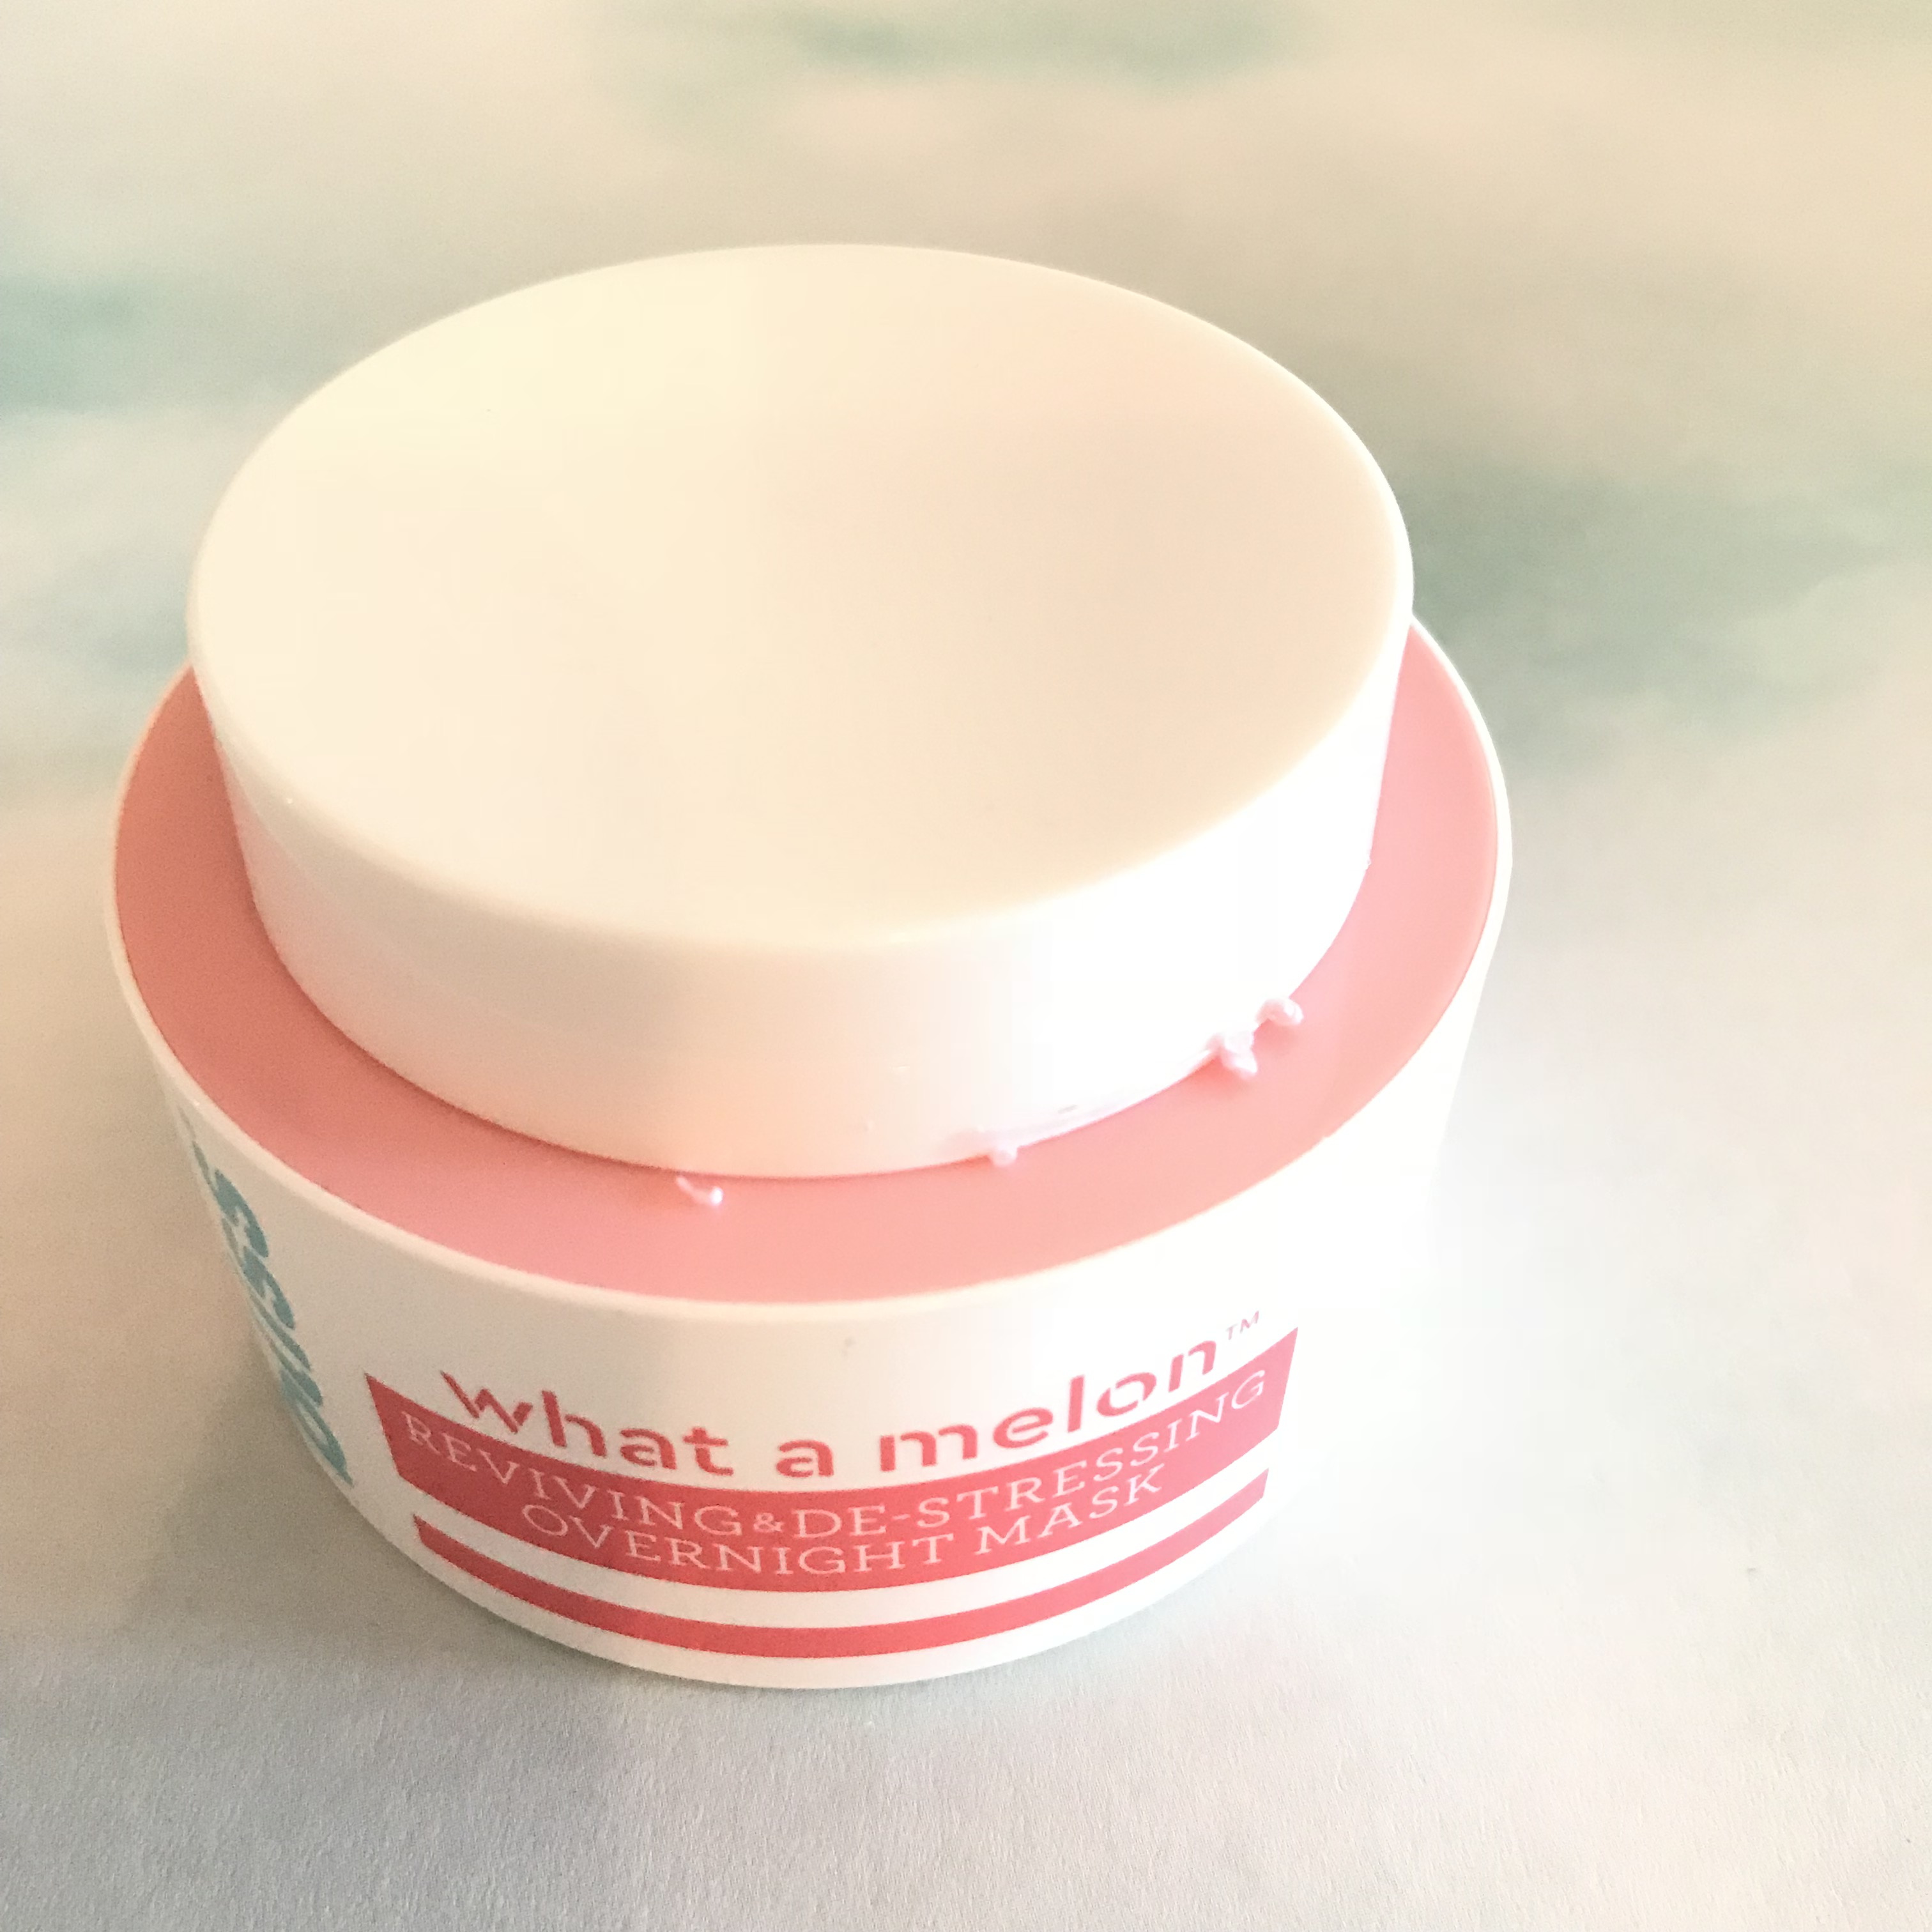 bliss, bliss skincare, bliss product review, bliss skincare review, bliss from target, cruelty free products from target, men's skincare, cruelty free skincare, anti aging skincare, christopher cupcakes, bliss what a melon, bliss face mask, glow watermelon dupe,